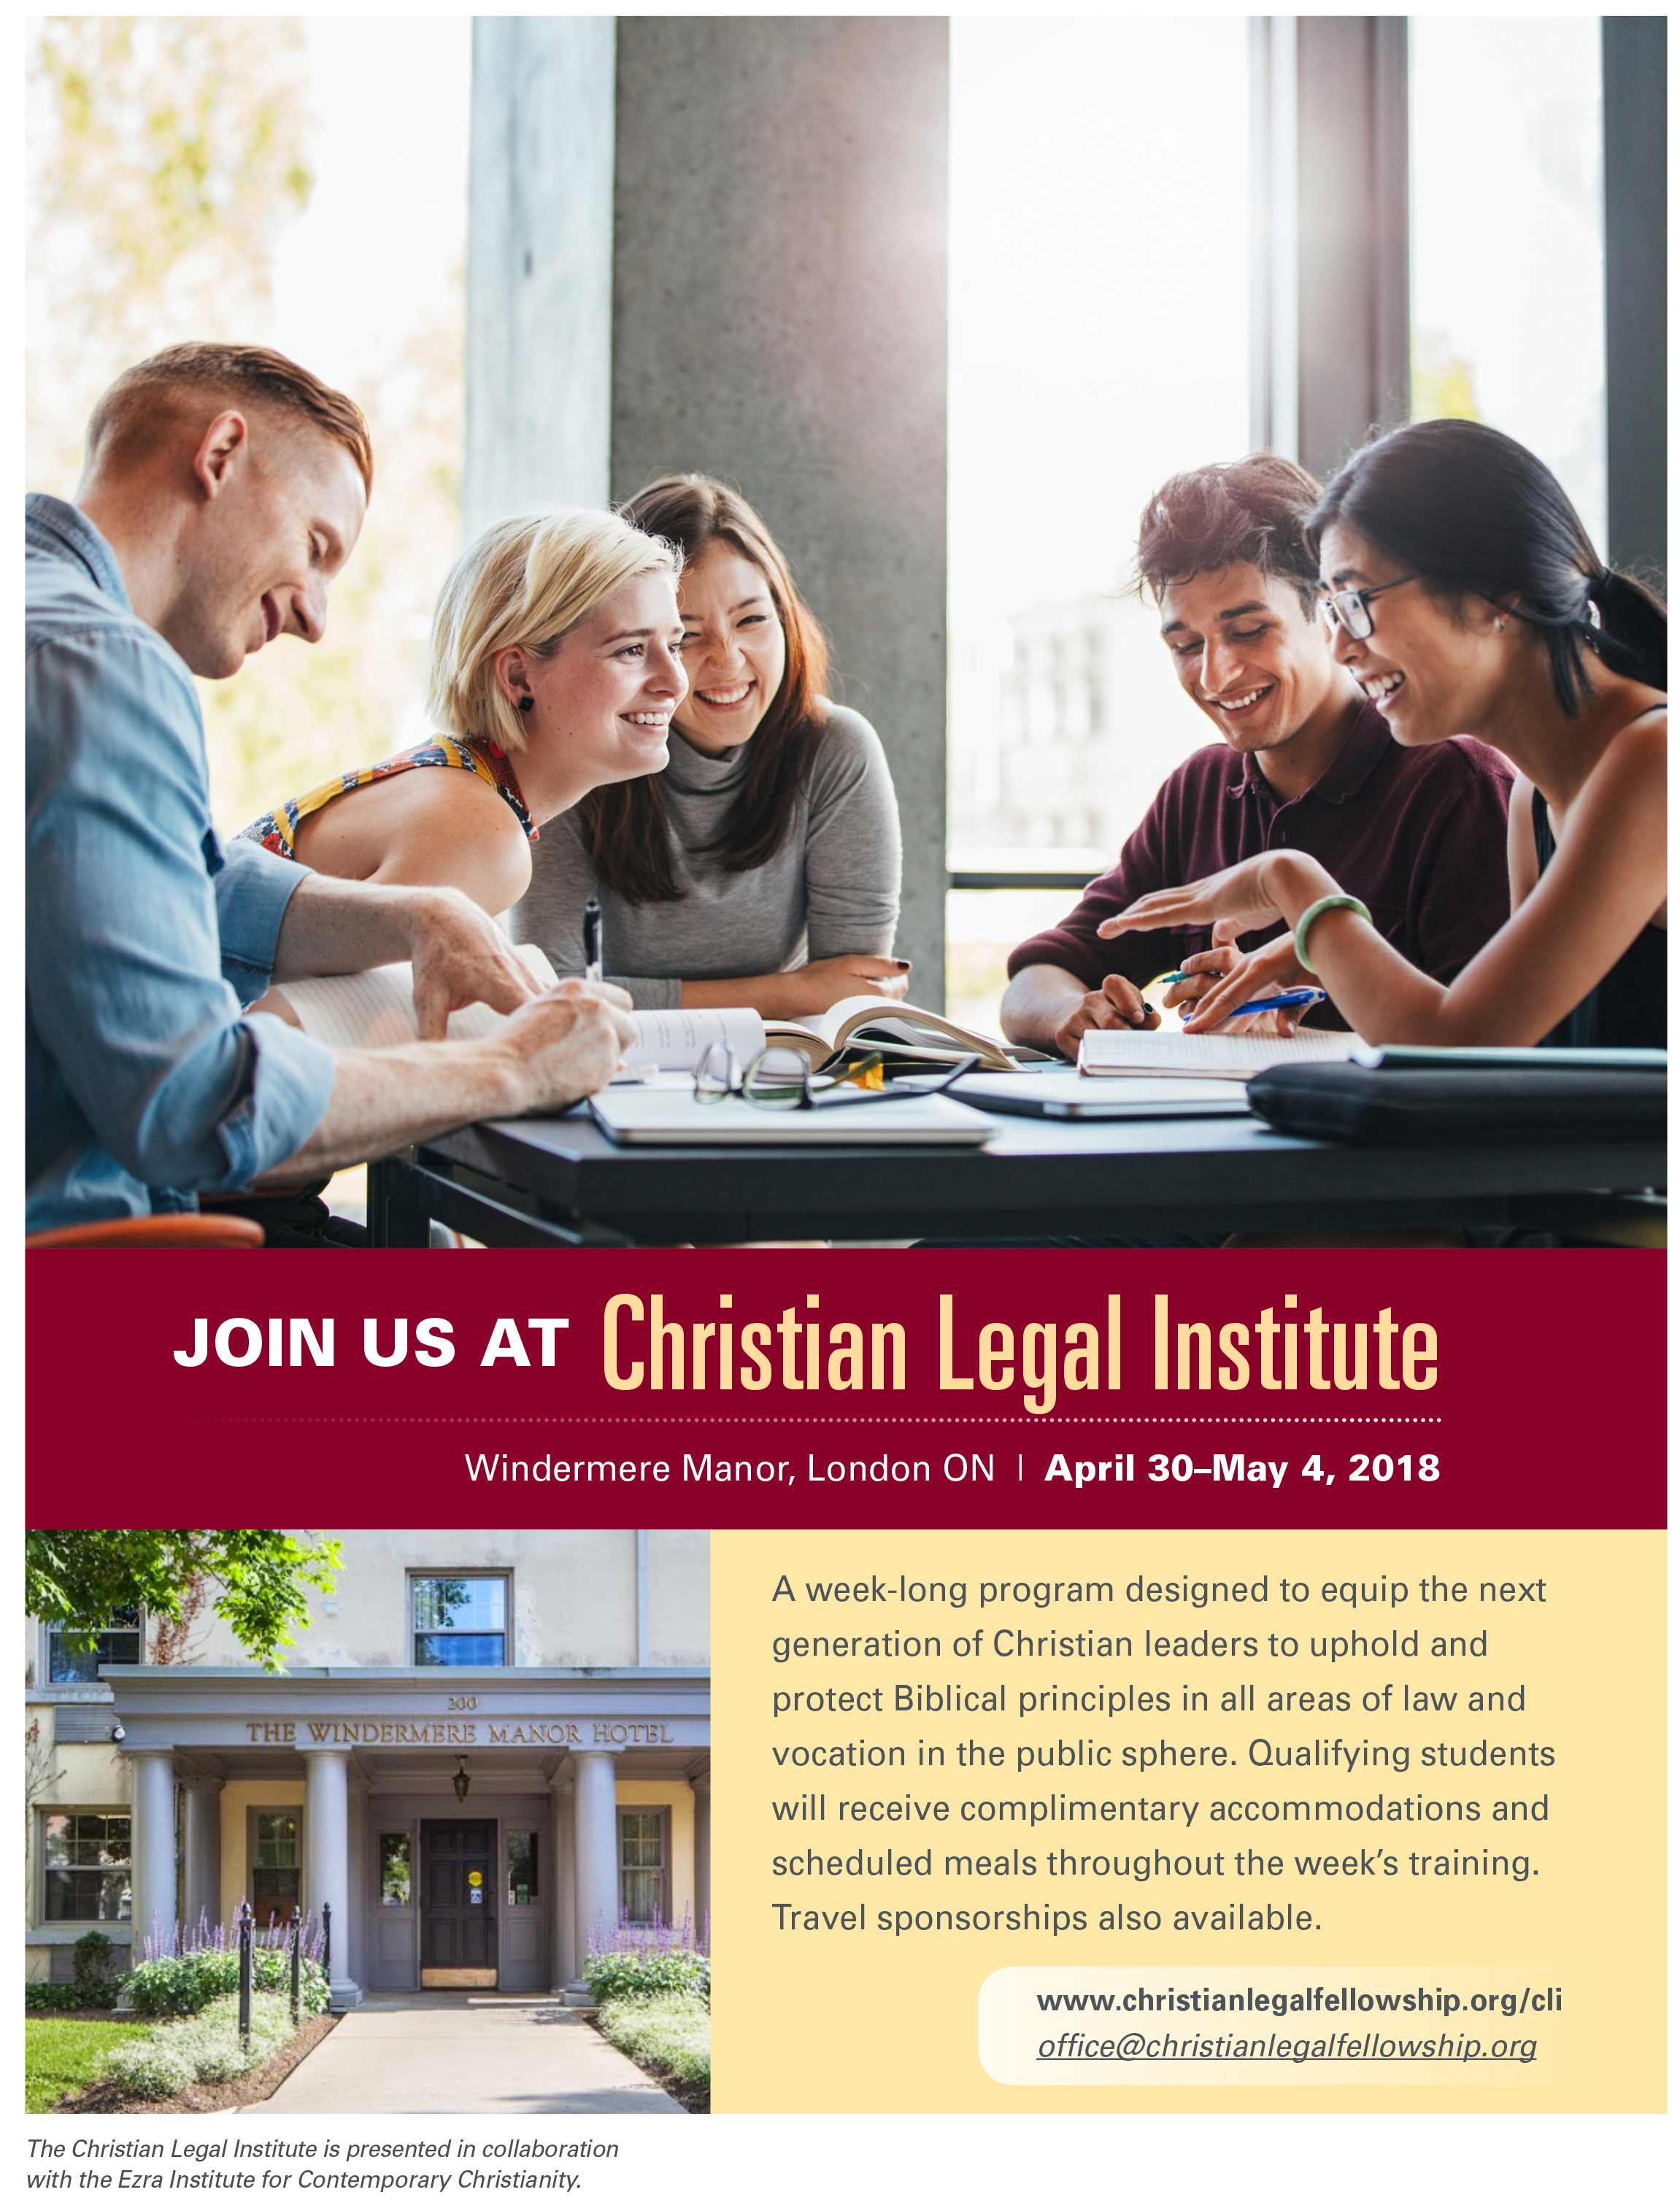 Apply  to attend the upcoming week-long 2018 Christian Legal Institute in London, ON (April 30-May 4, 2018).